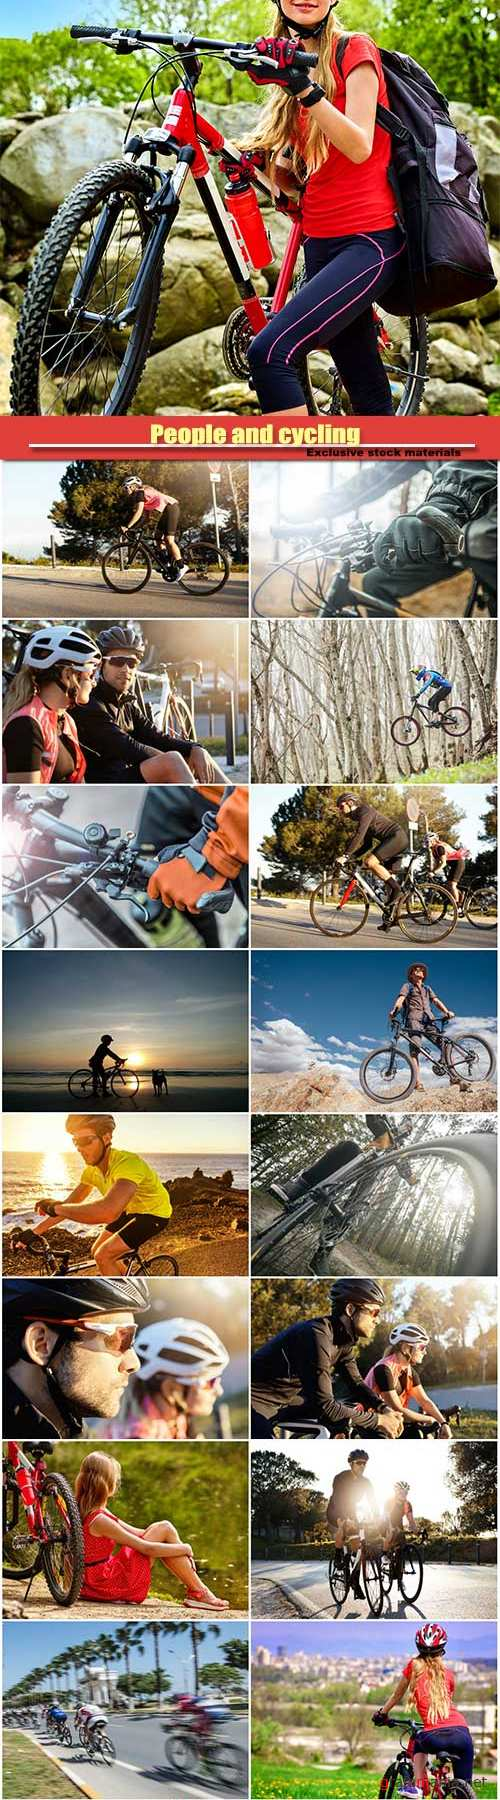 People and cycling, fitness and active lifestyle